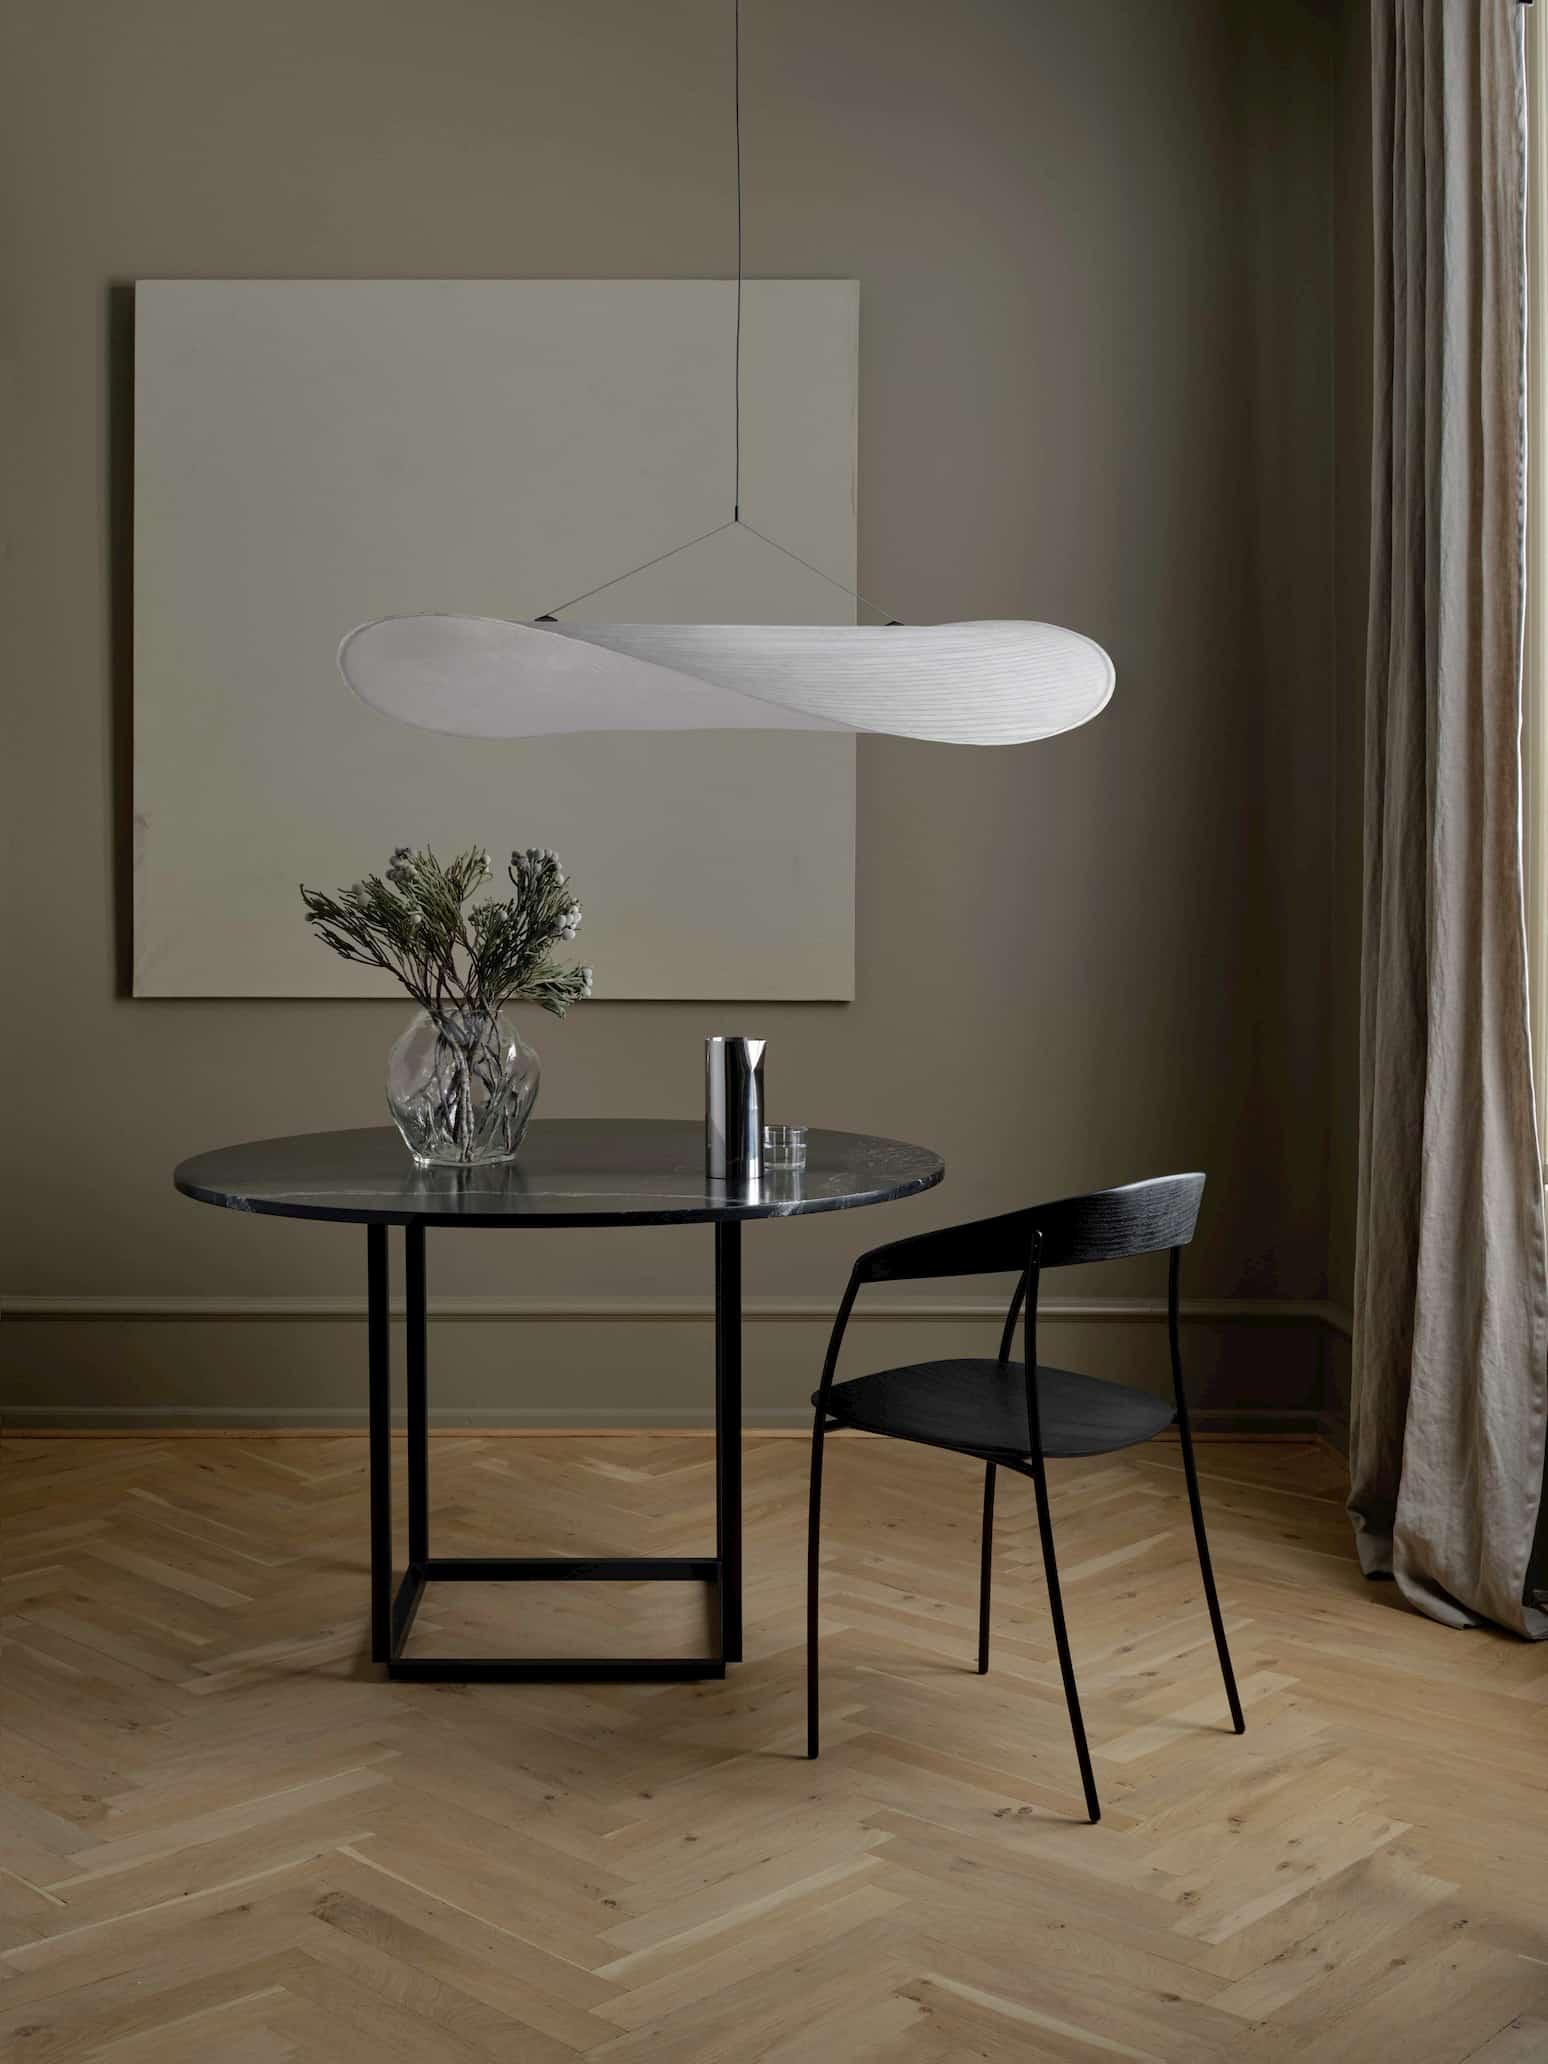 this is an artist white pendant and office chair made by New Works